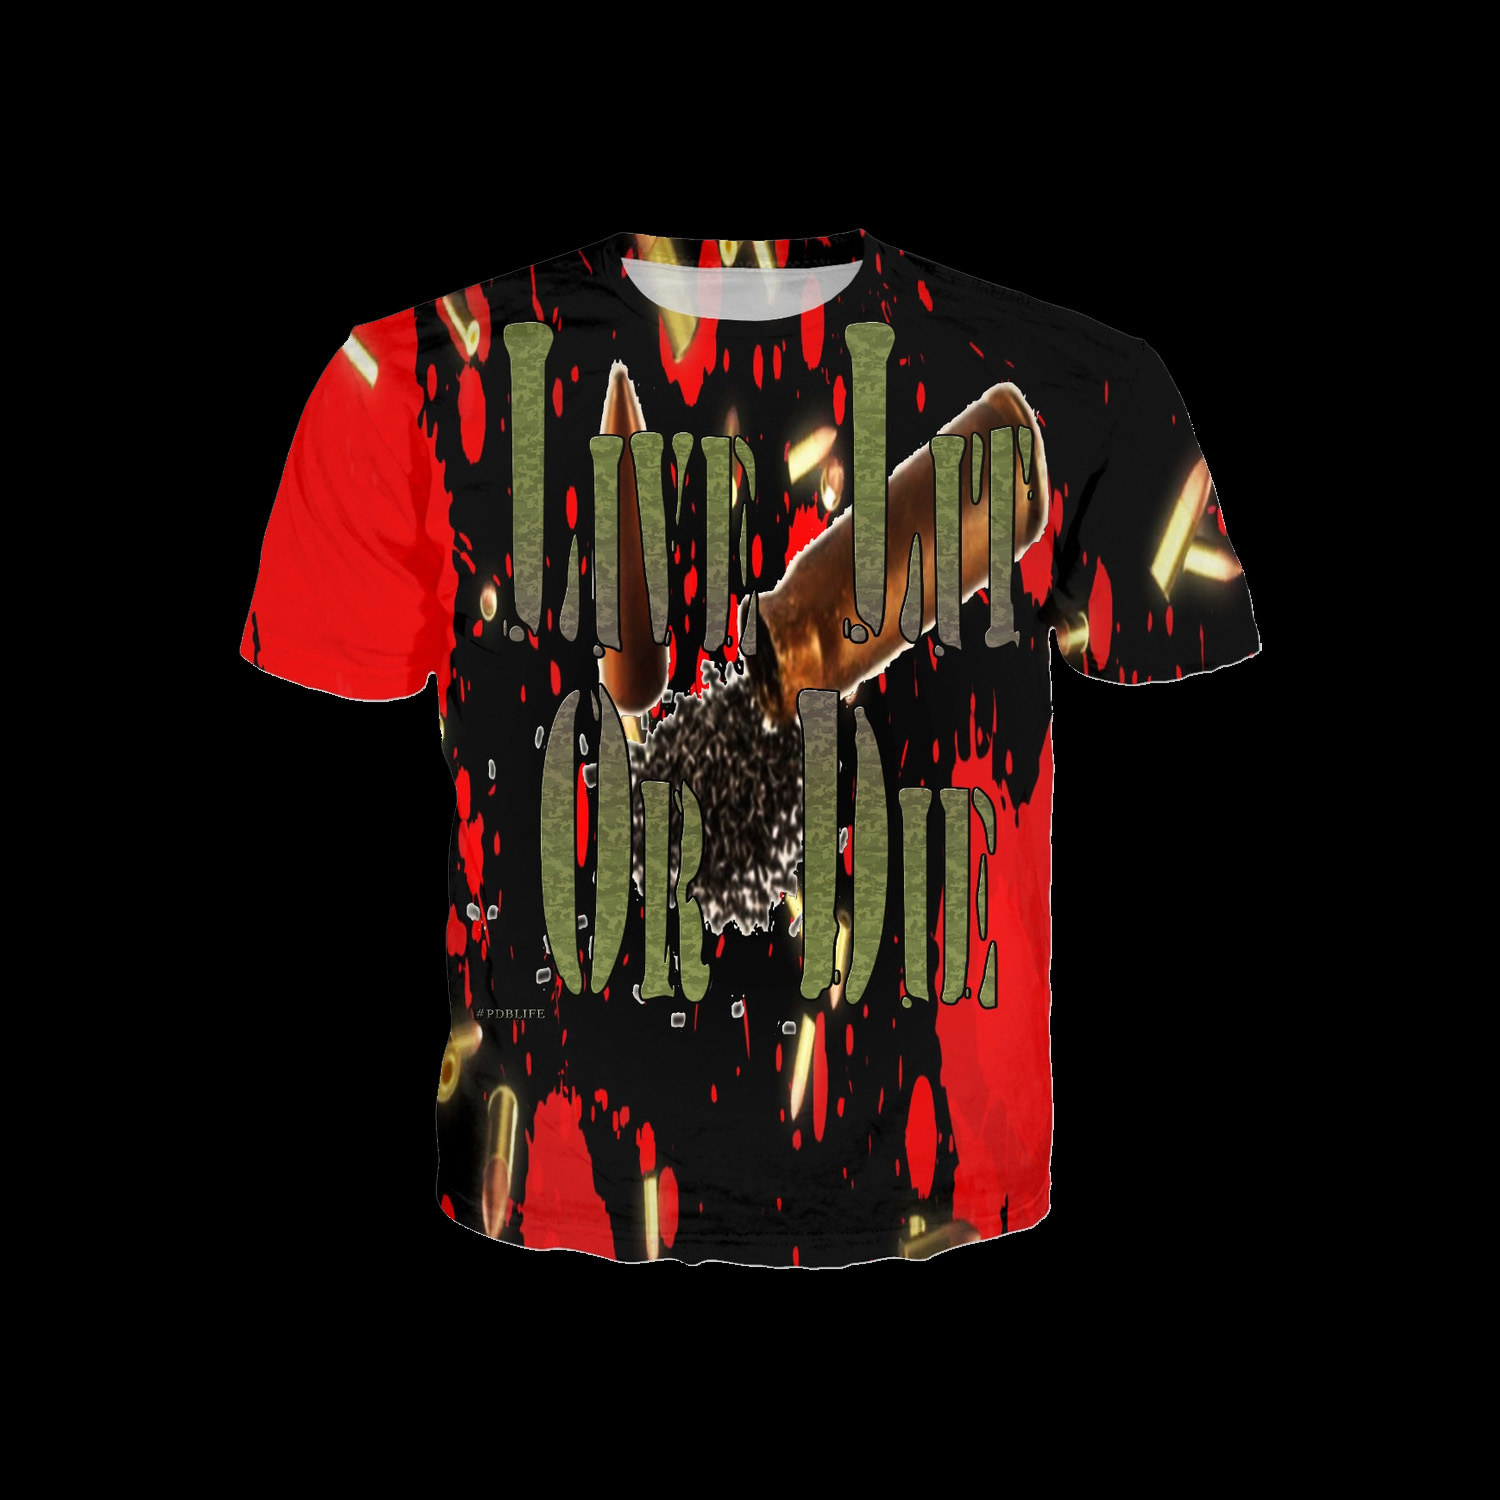 Die Collection Live Lit Or Die Collection Series 2 - Shirt - Pdblife ...